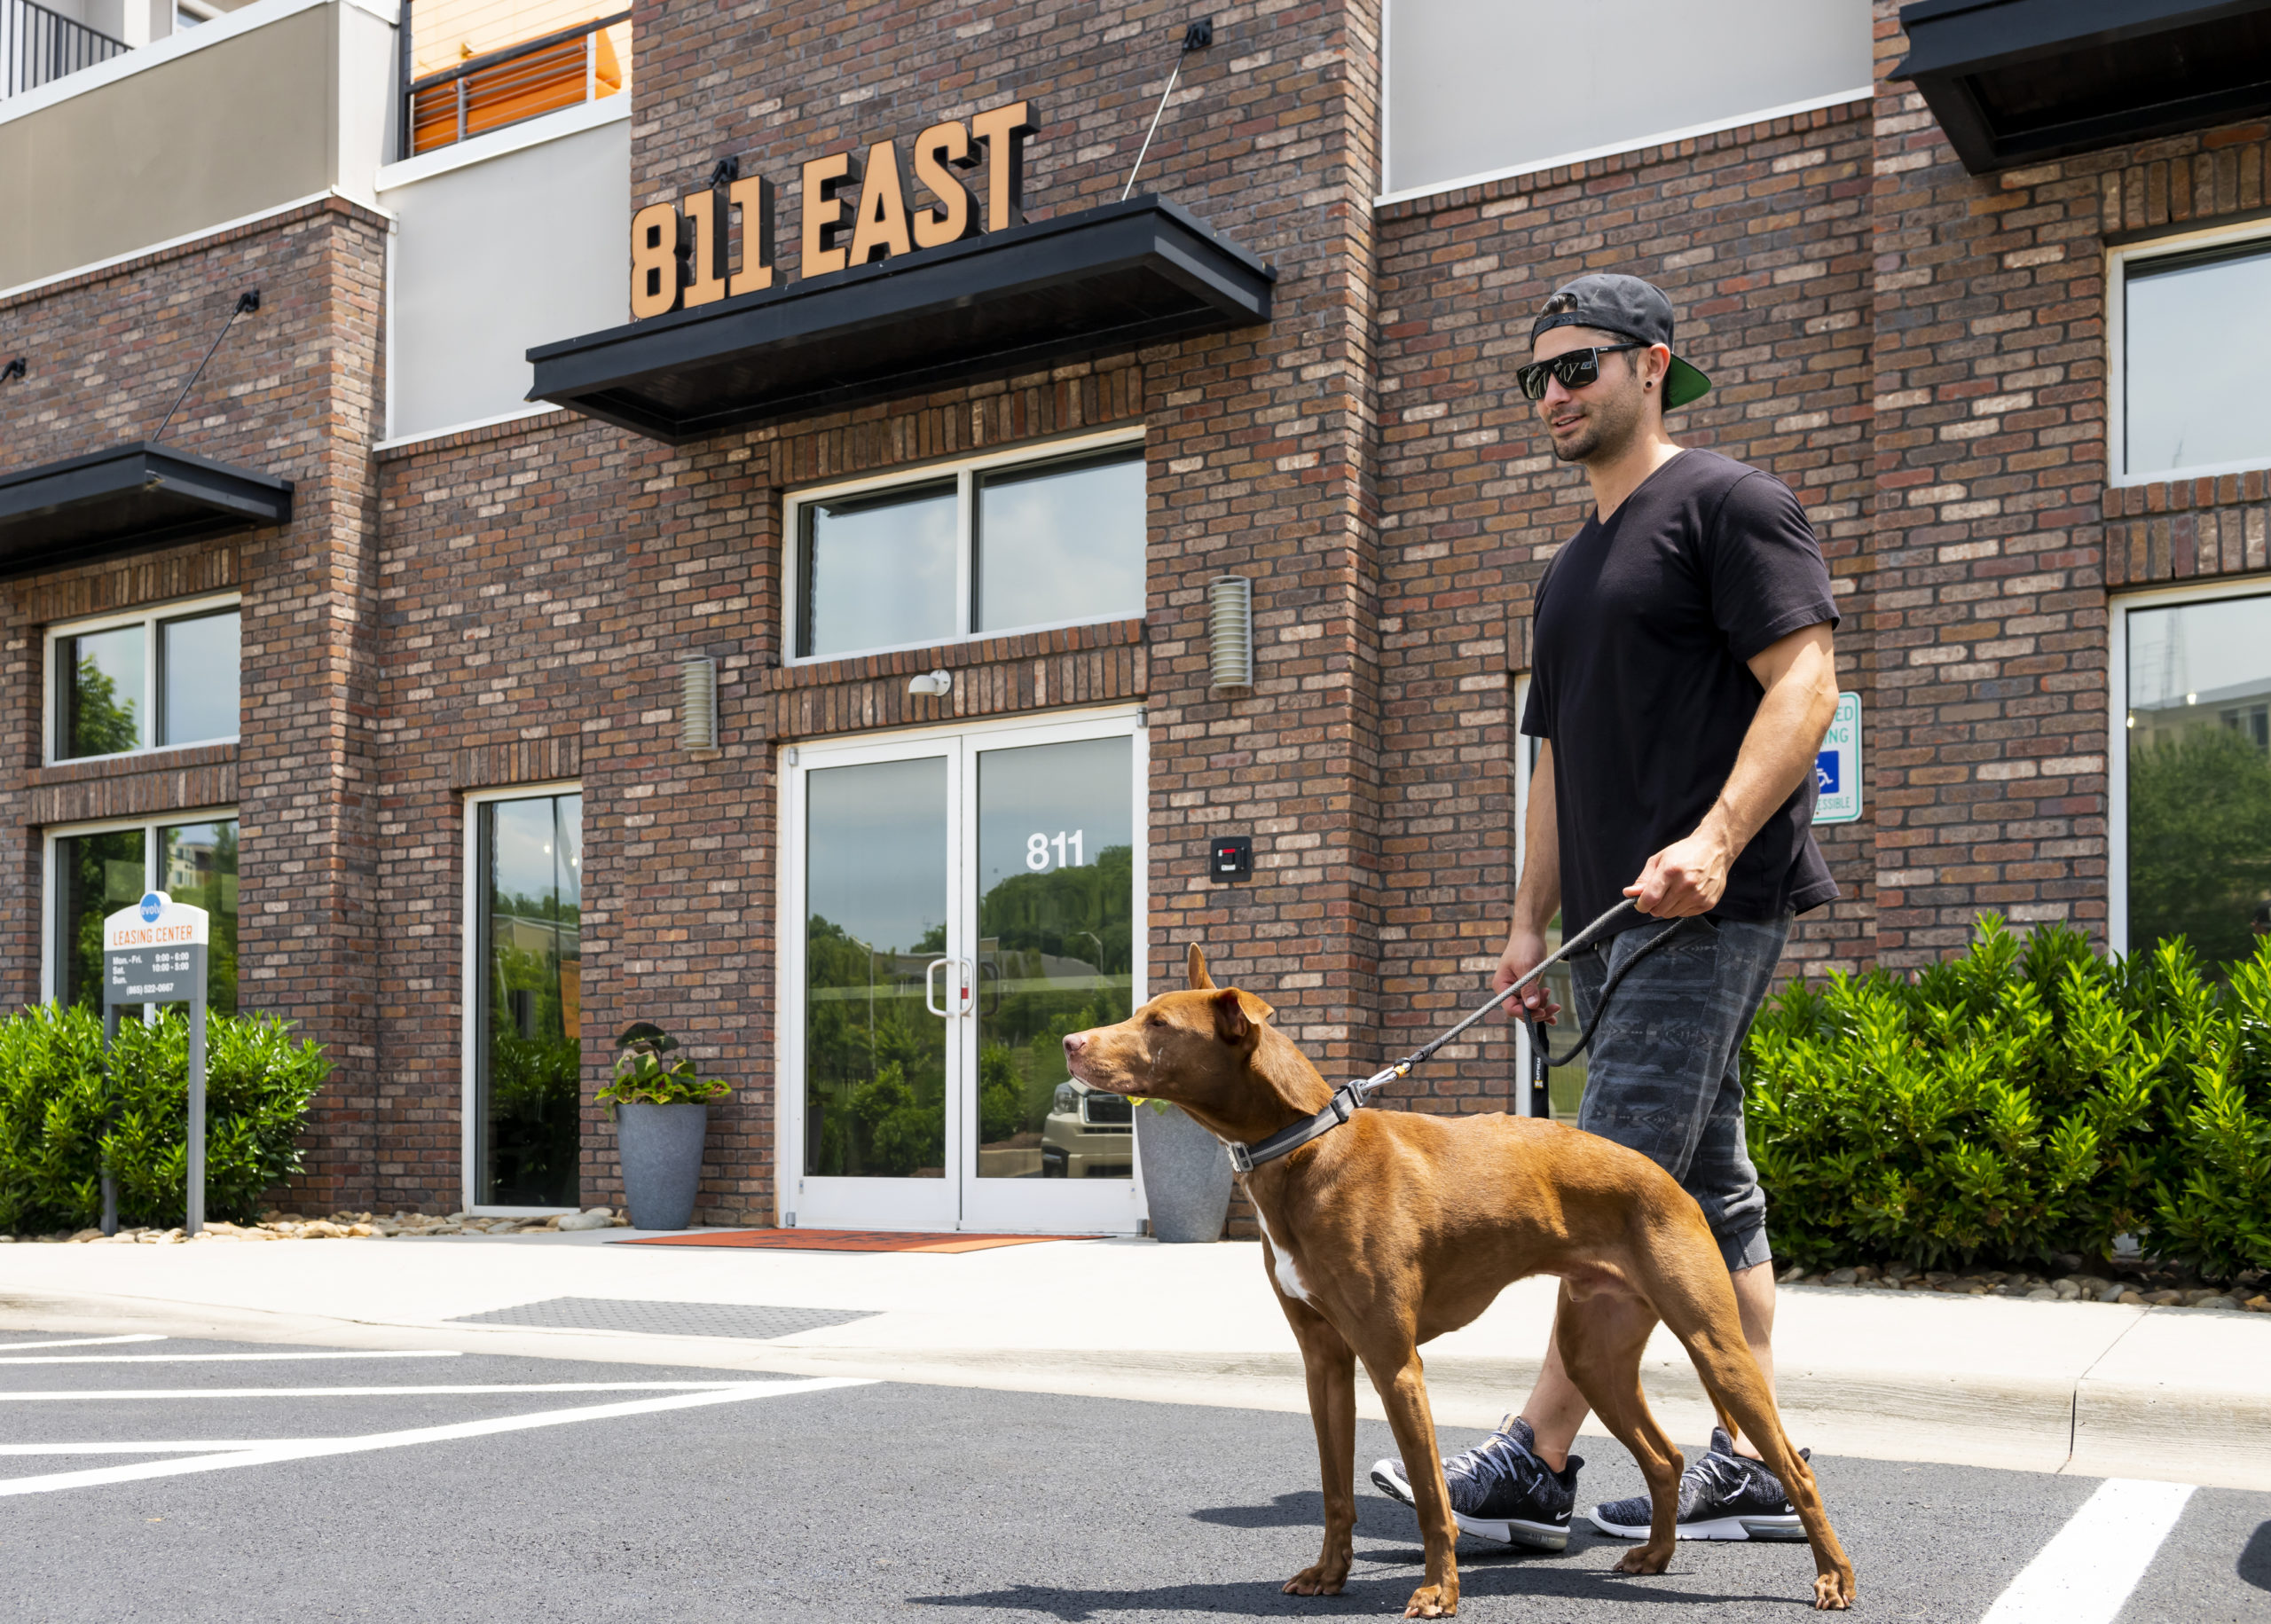 guy with dog outside 811 east road trip spots